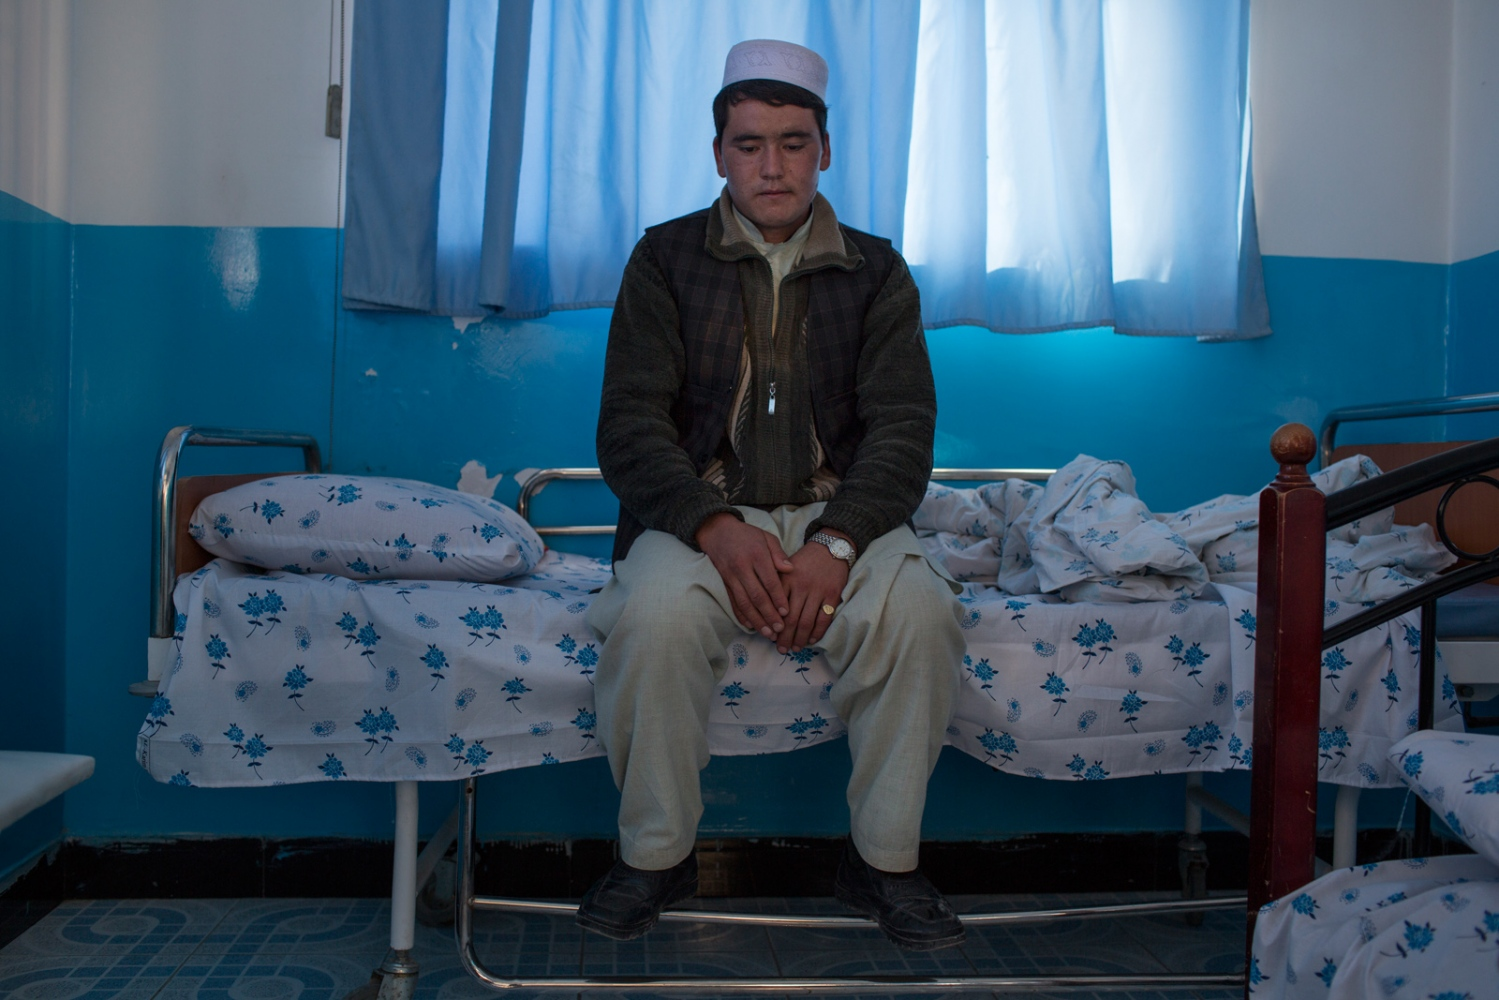 Mohammad sits on the bed while his mother - Bibi Oghel – rests. Mohammad says she was very worried and unable to communicate. Relatives can stay overnight in the same room as those they accompany. One night stays in the hospital cost 1500 Afghanis (about $23) and some families borrow money to cover these costs. Mazar e Sharif, Afghanistan. December 2015.